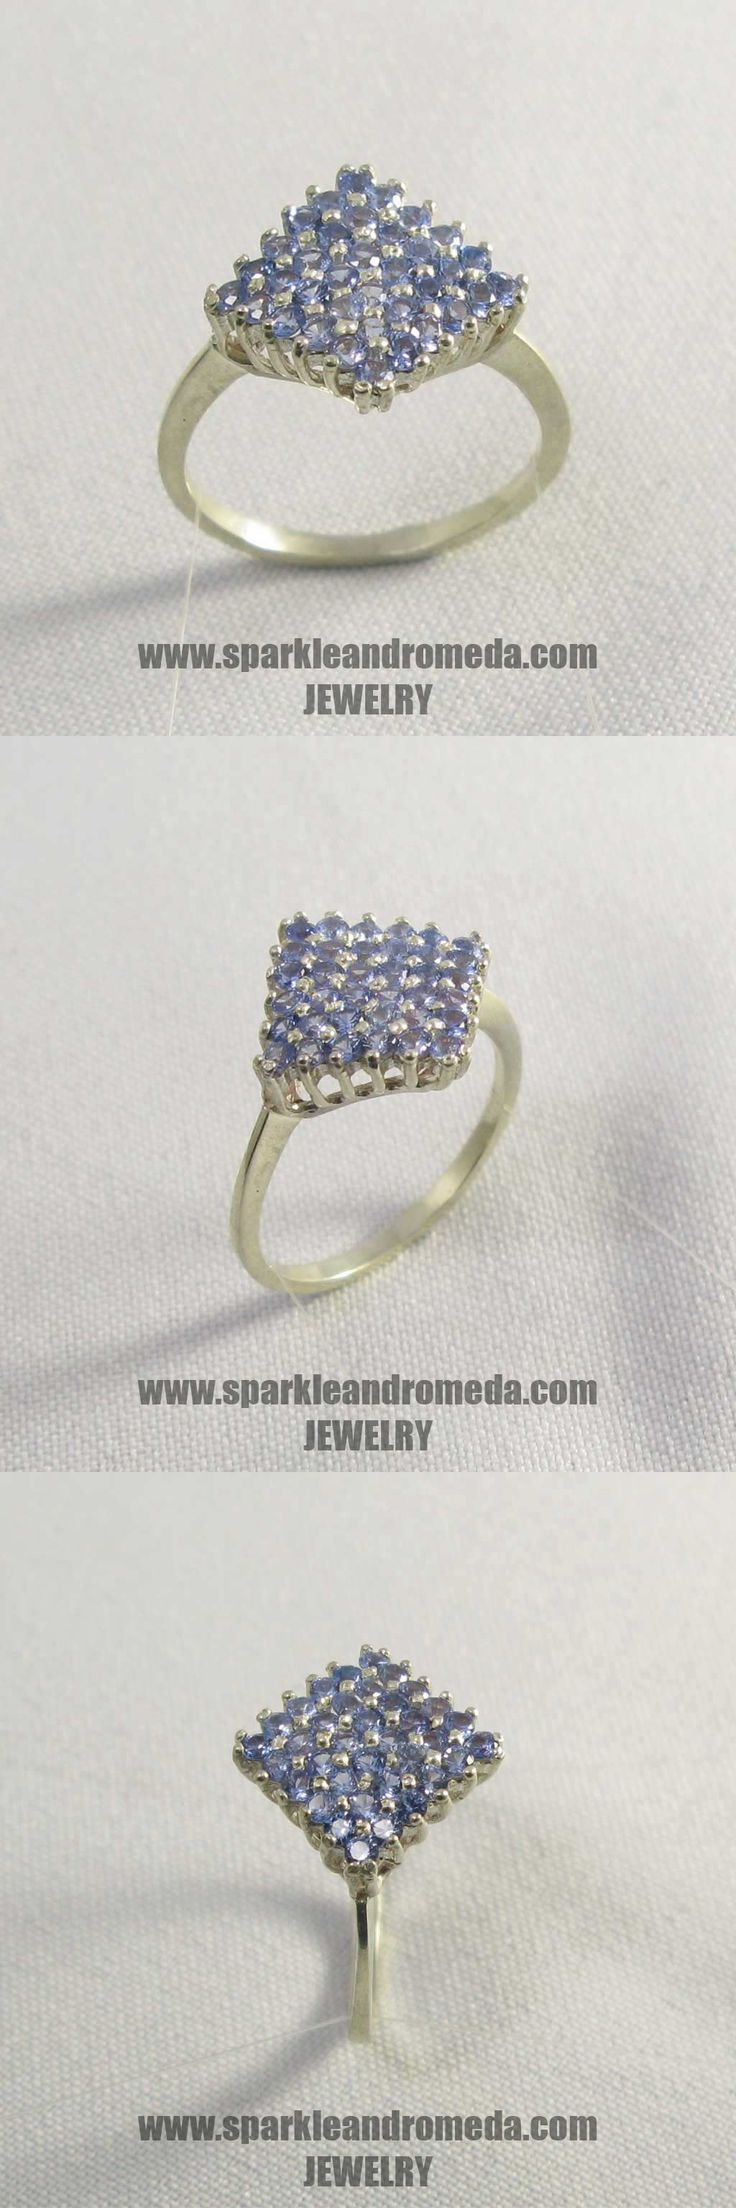 Sterling 925 silver ring with 36 round 2 mm light blue sapphire color cubic zirconia gemstones.